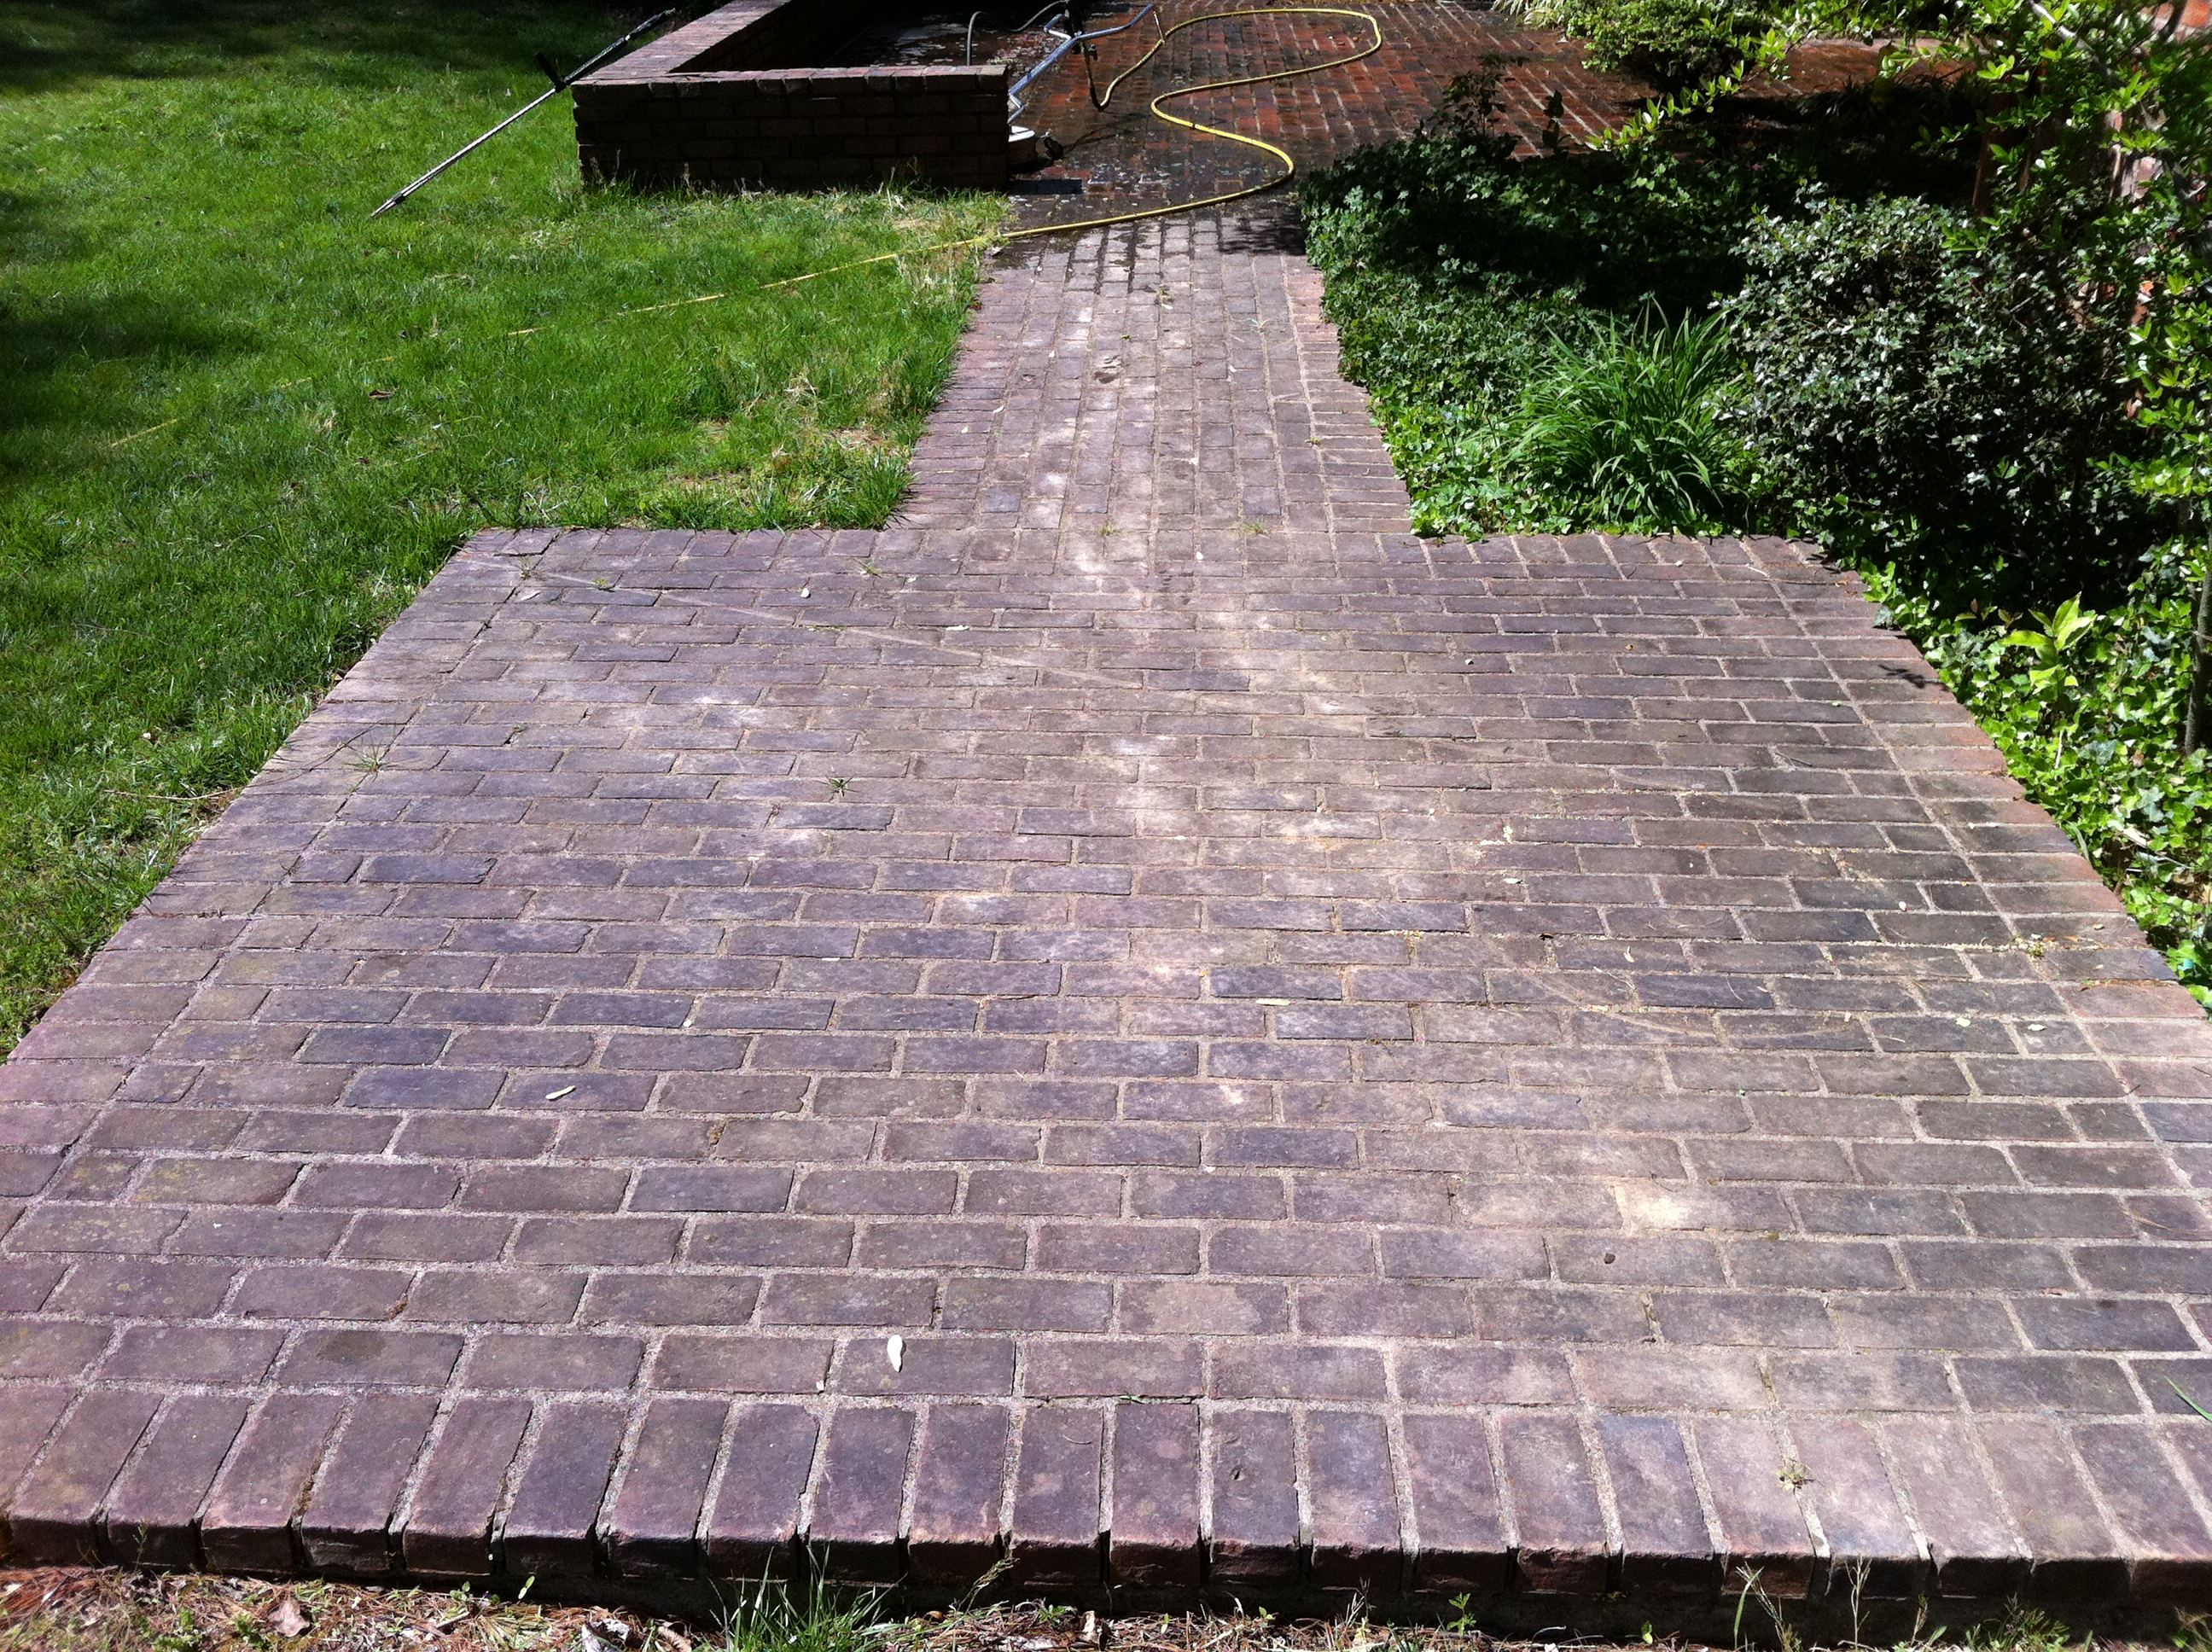 Brick Patio Cleaning In Lexington Ky 40502 Pressure